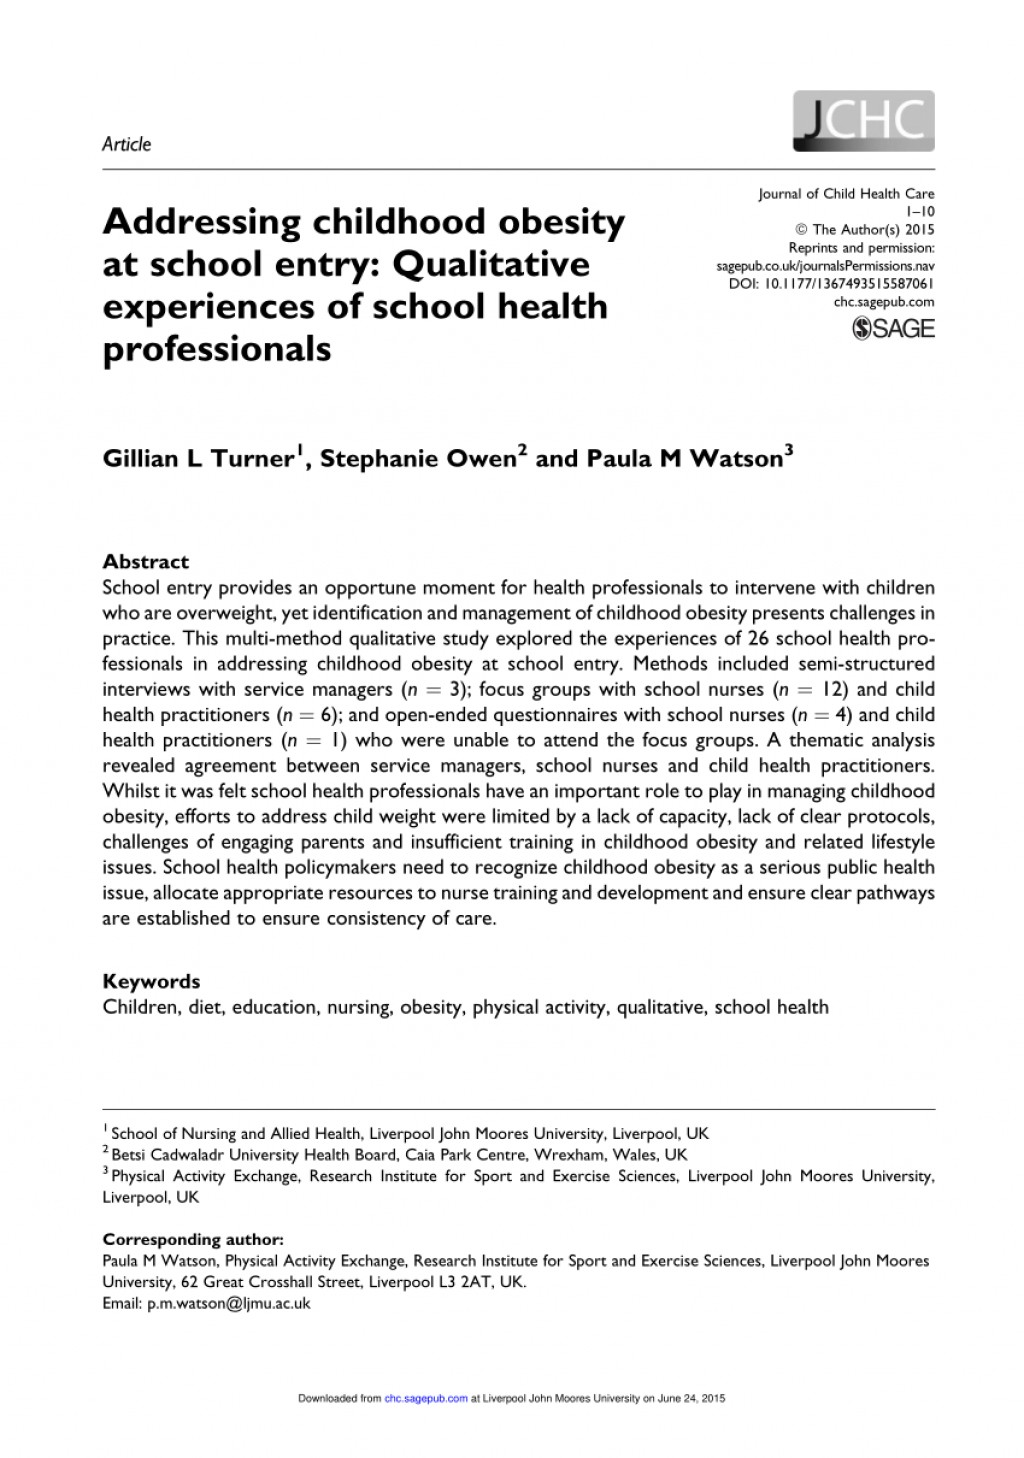 004 Largepreview Research Paper Nursing Articles On Childhood Stirring Obesity Large